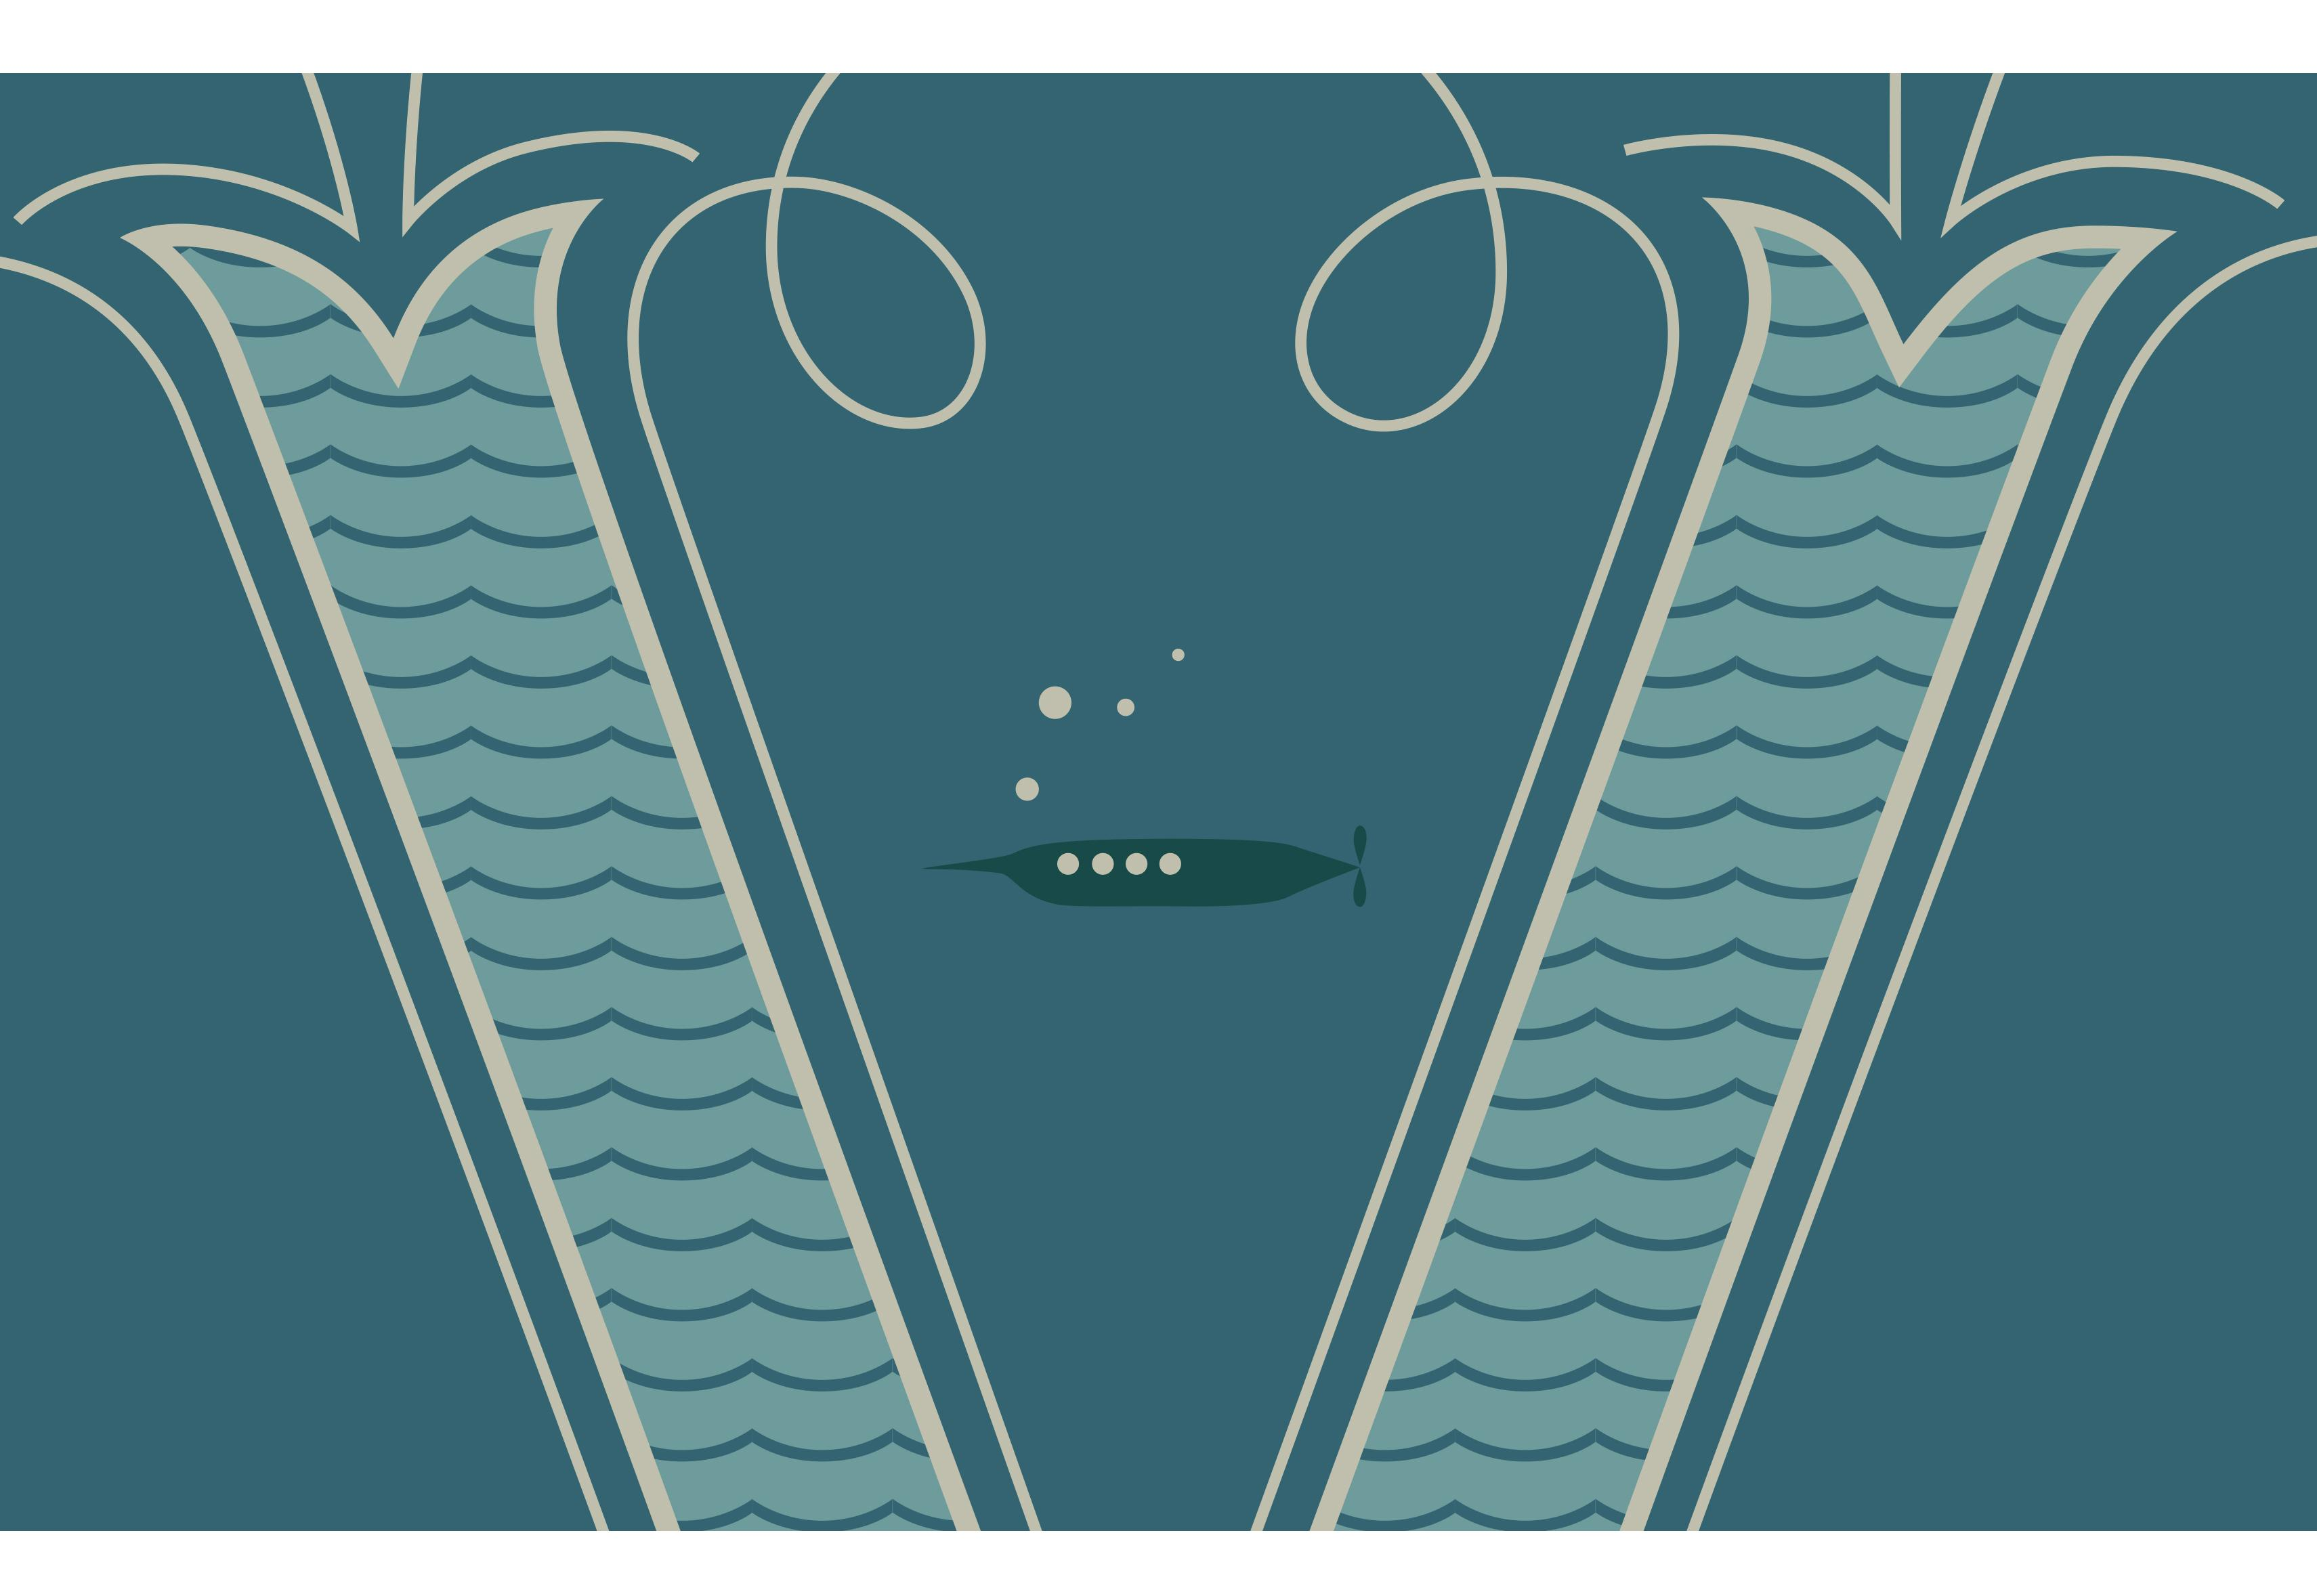 20,000 Leagues Under the Sea by Jules Verne - image 13 - student project